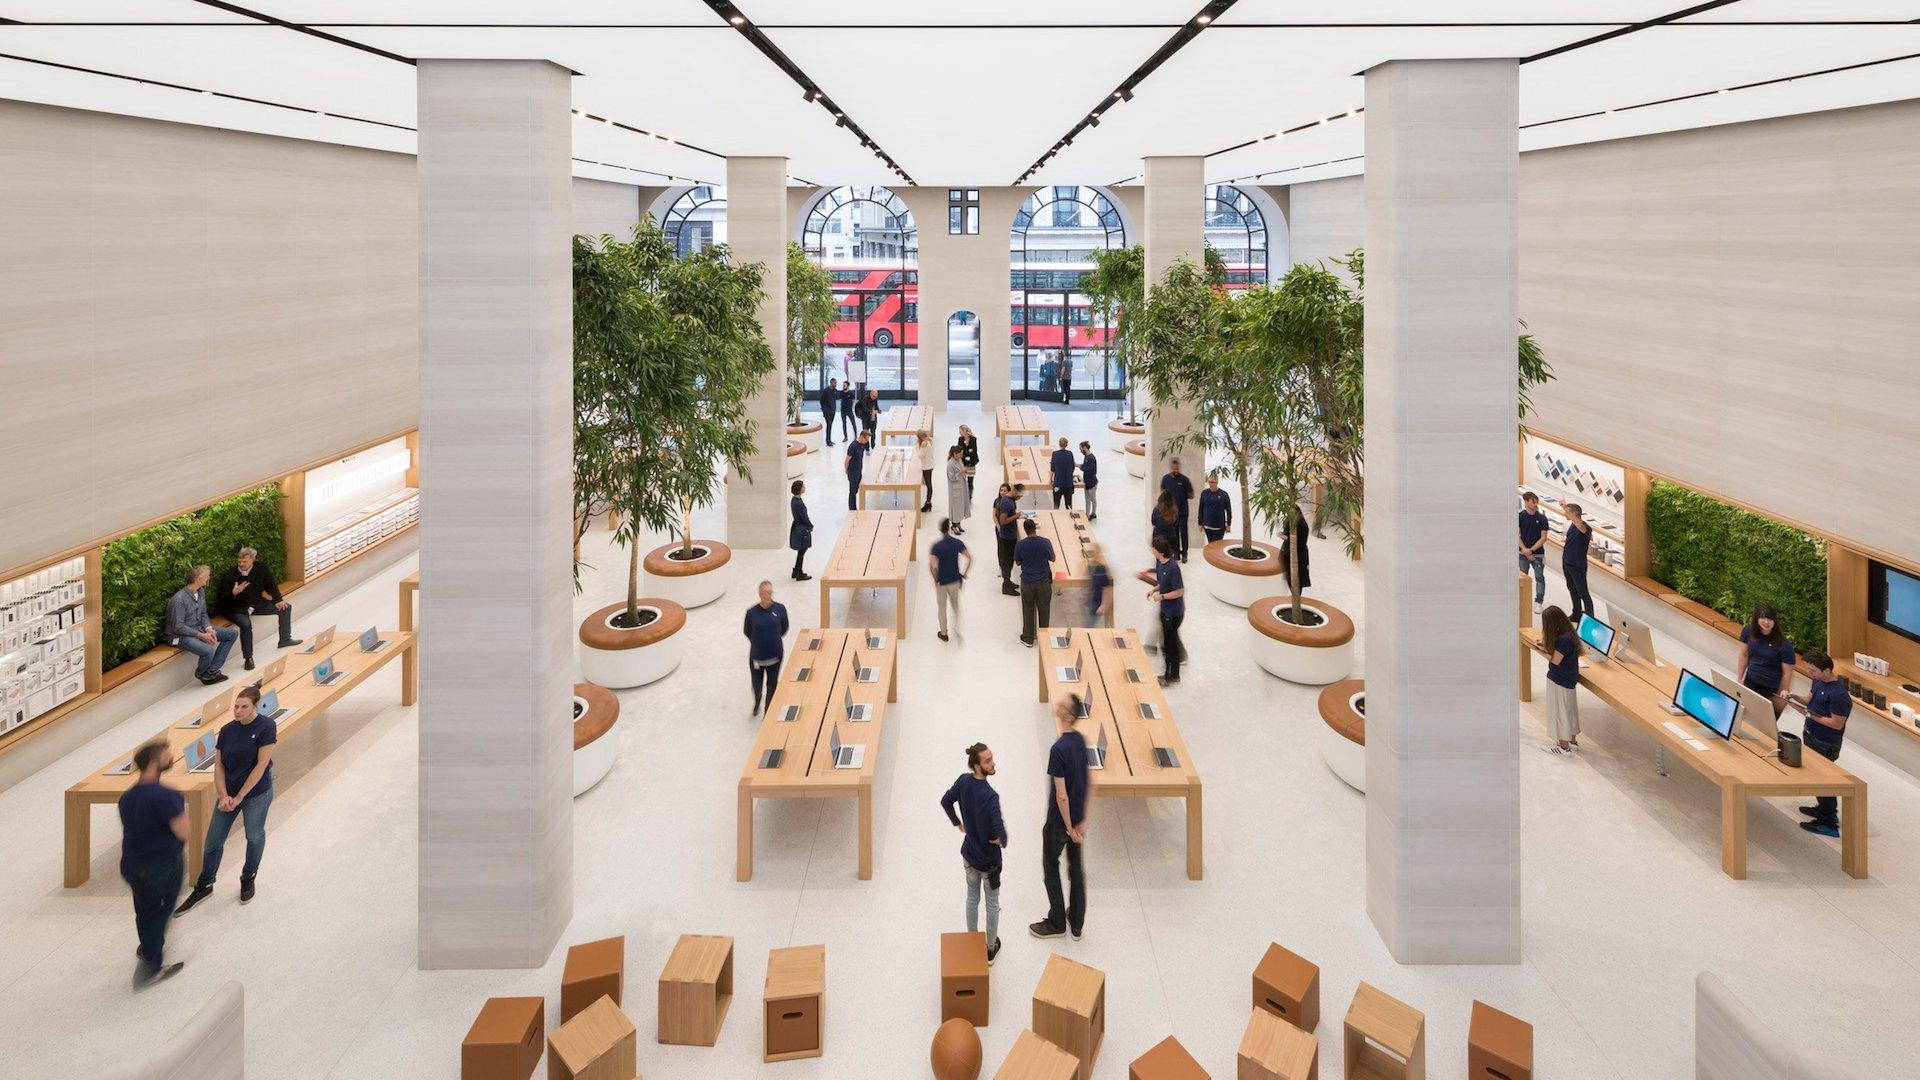 apple-store-londres-foster-disenio-14102016-in2